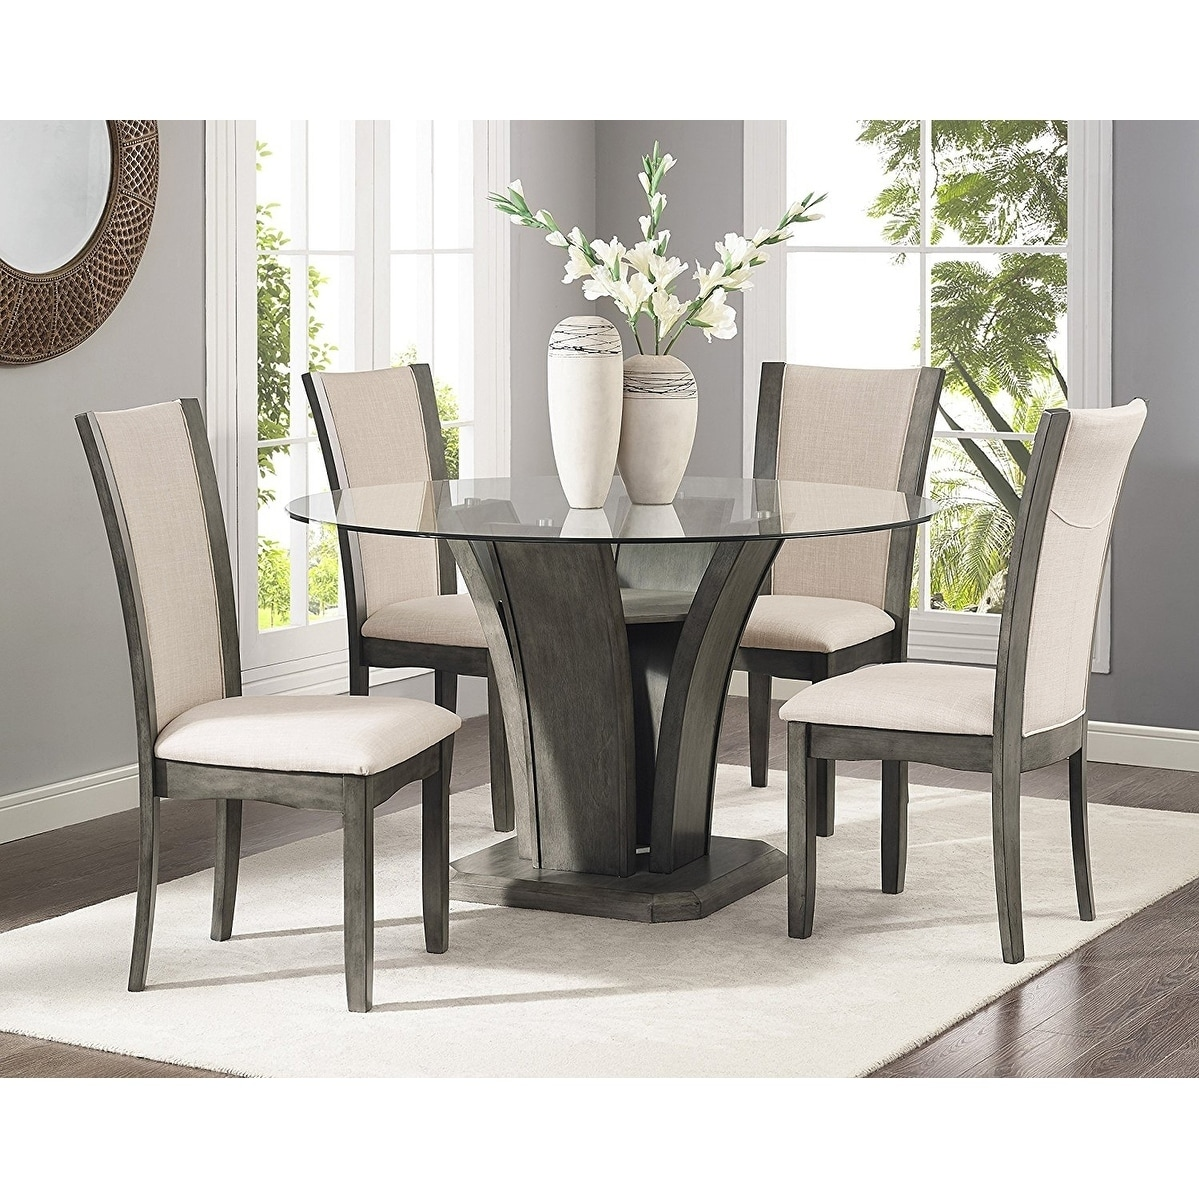 Shop Kecco Grey 5 Piece Glass Top Dining Set Free Shipping Today